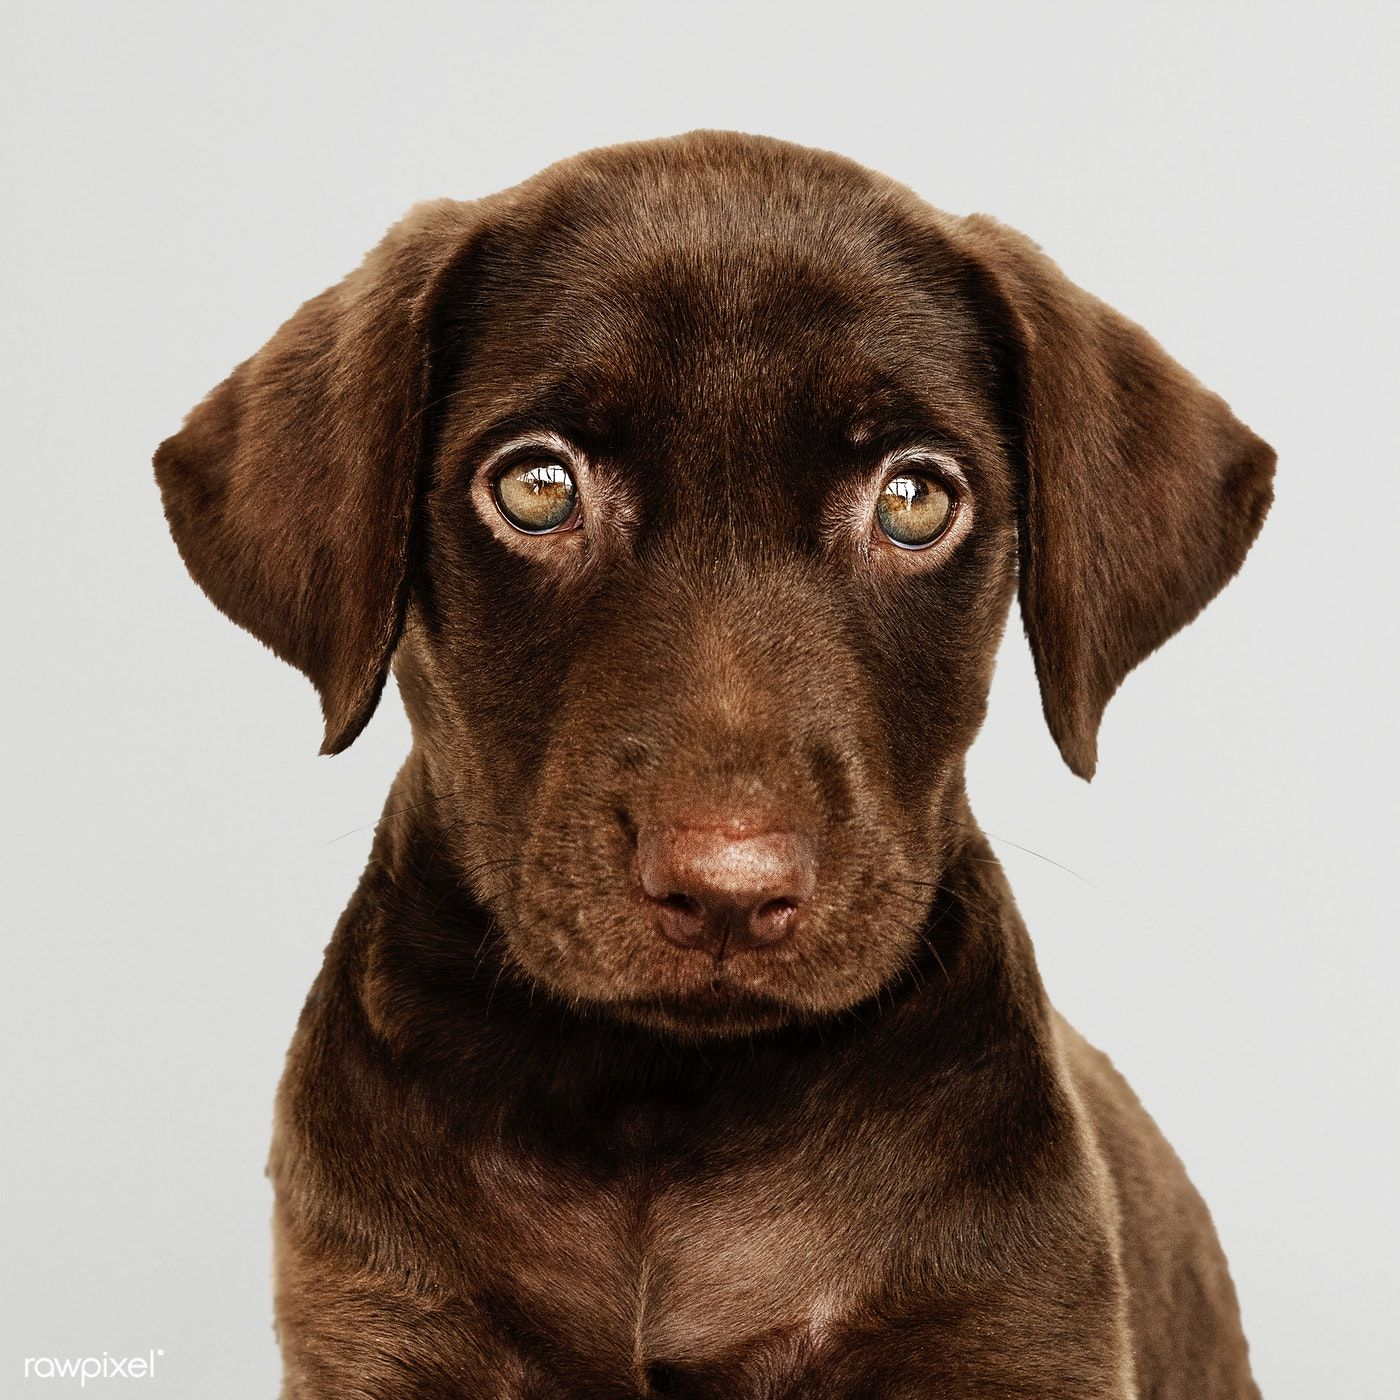 Download Premium Psd Of Adorable Chocolate Labrador Retriever Portrait Labrador Retriever Chocolate Labrador Retriever Labrador